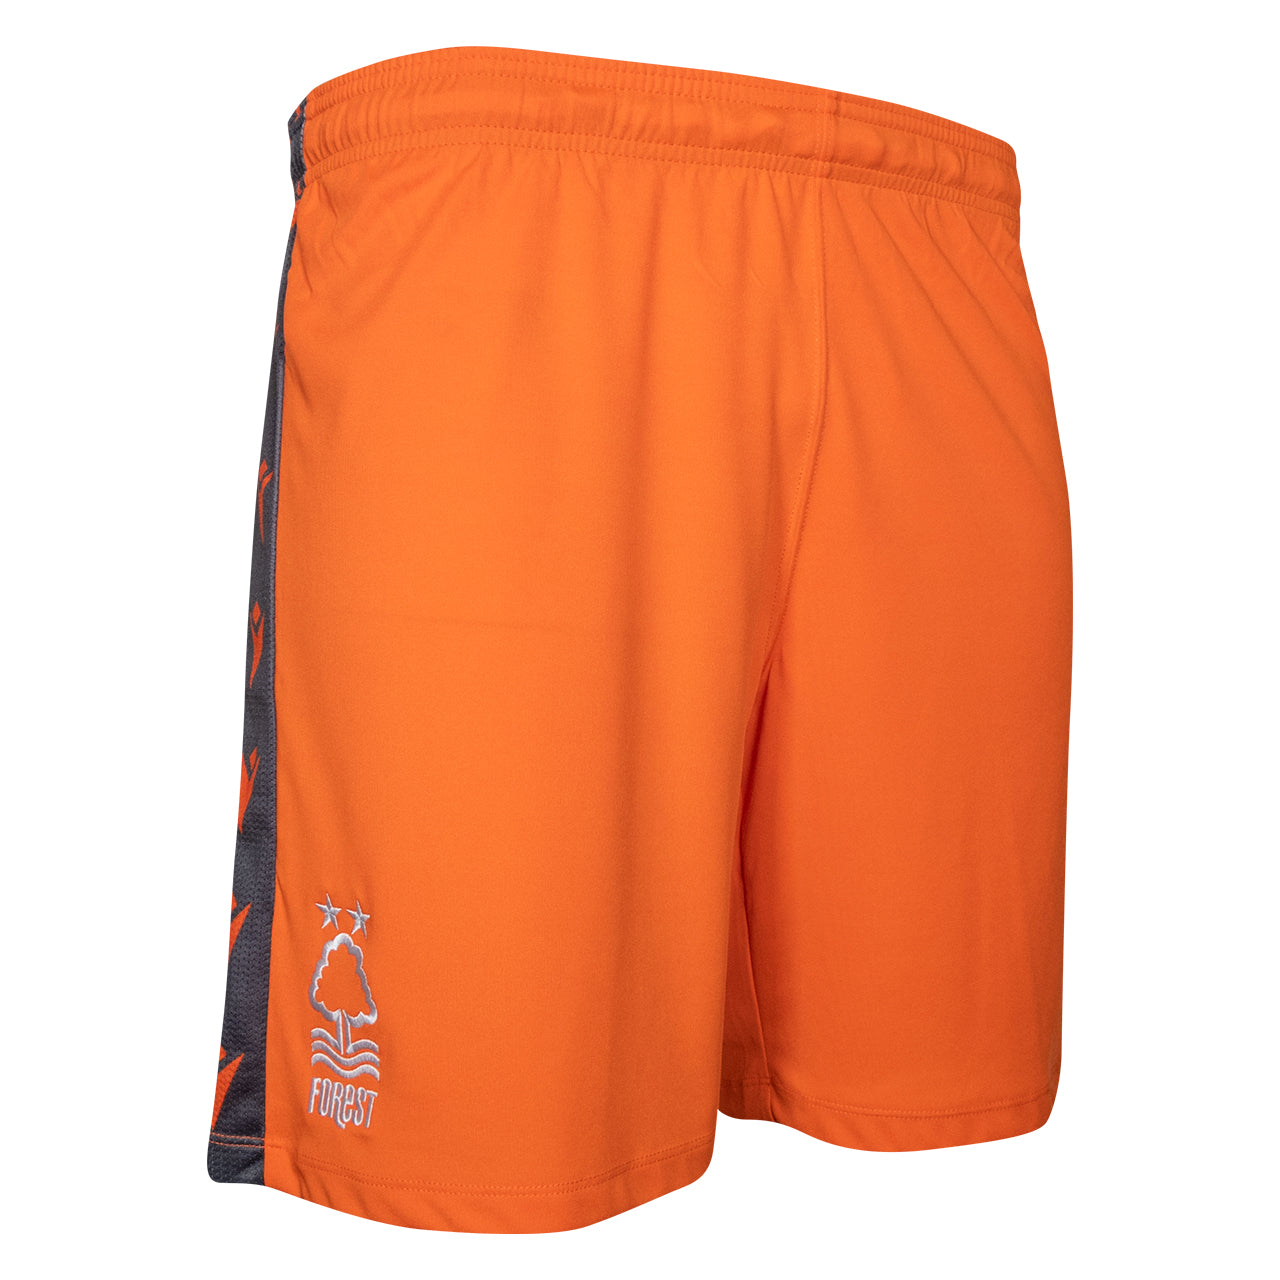 NFFC Mens Orange Goalkeeper Shorts 2020/21